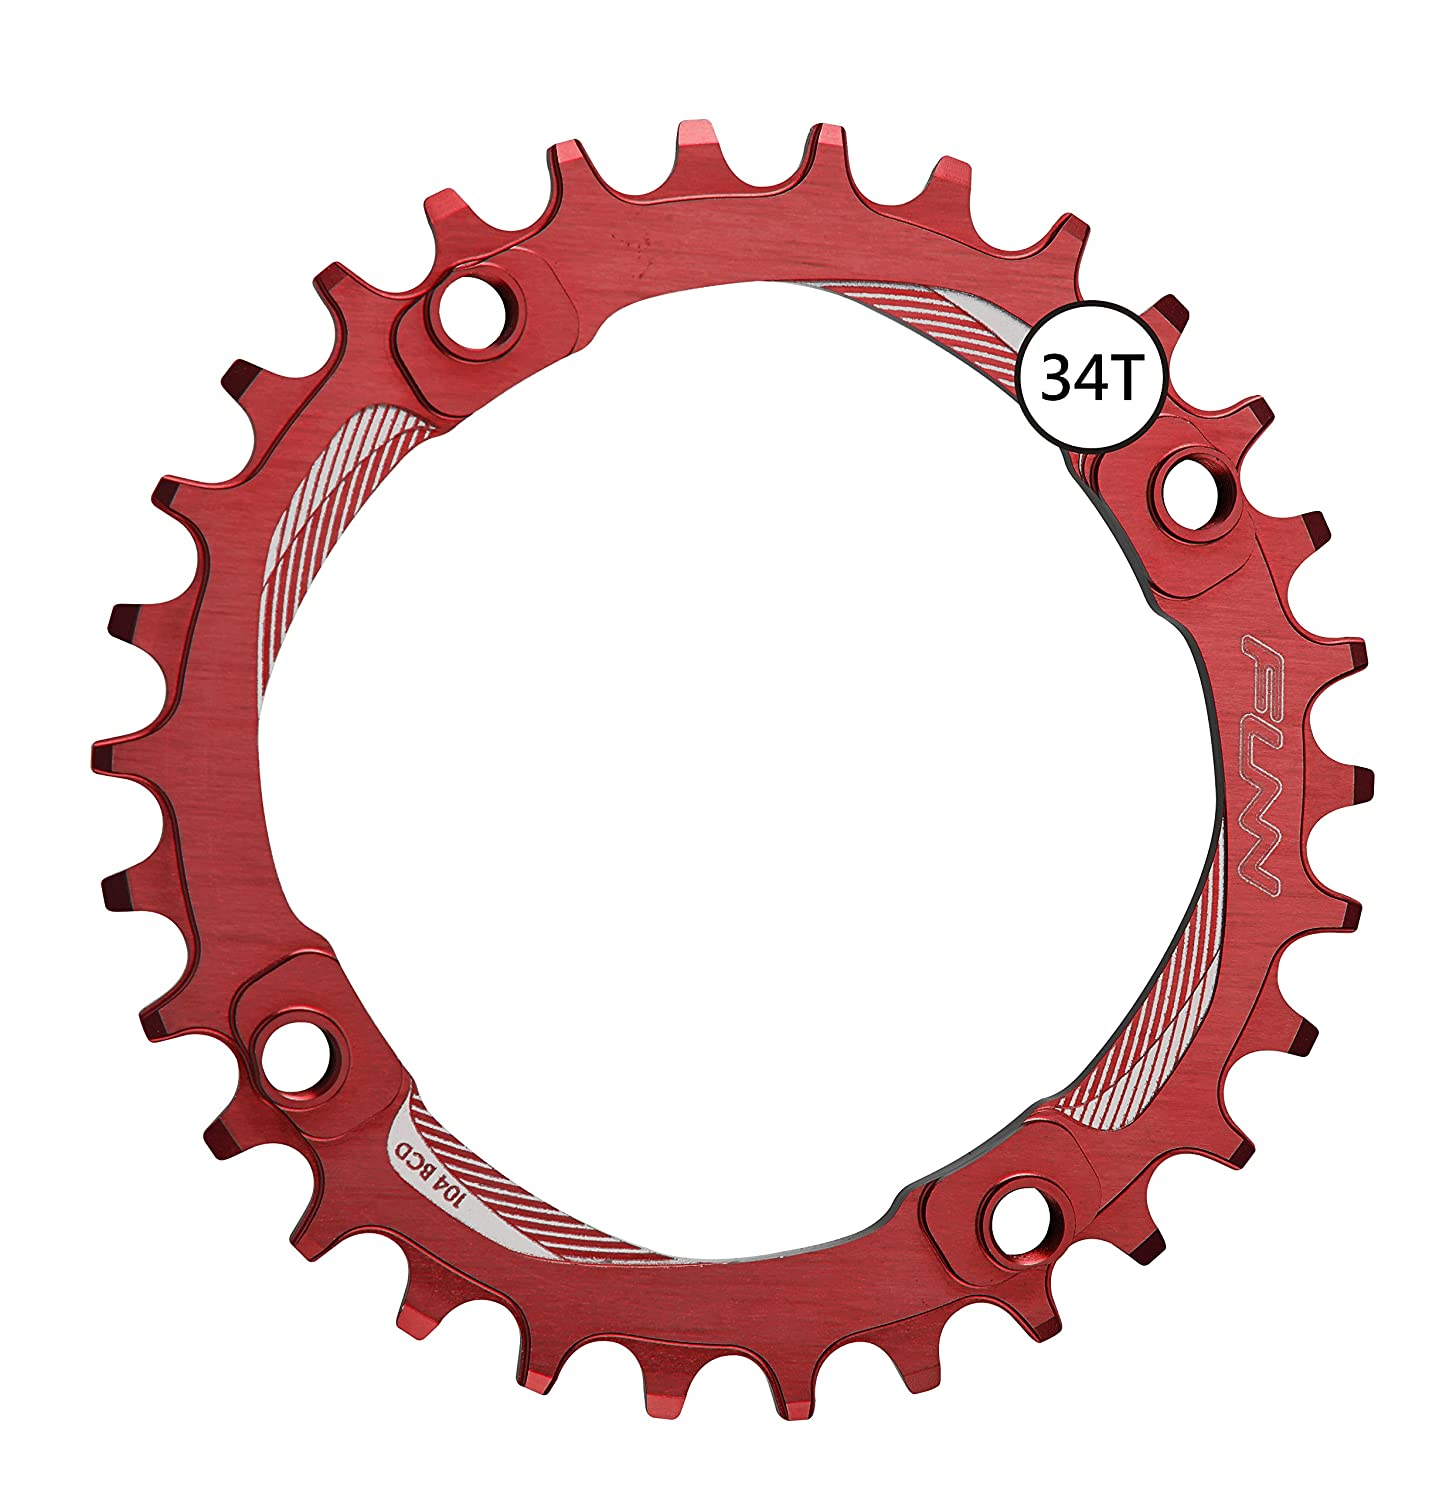 FunnソロNarrow Wide Chainring 34t B01NCUL96R レッド レッド